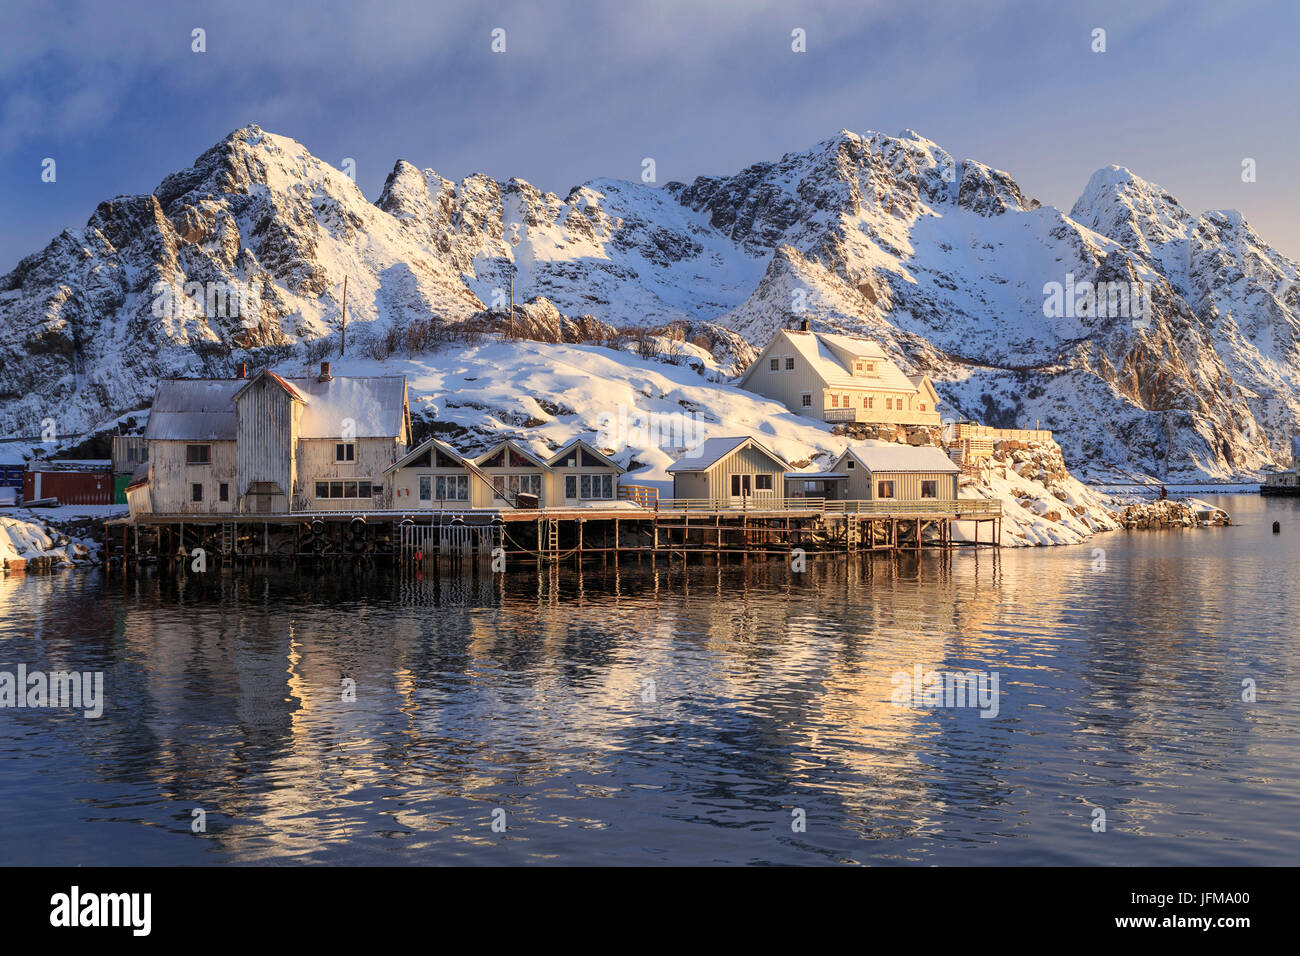 Stilt houses perched over the water in front of the stunning mountains of Henningsvær Fishing village, Lofoten - Stock Image